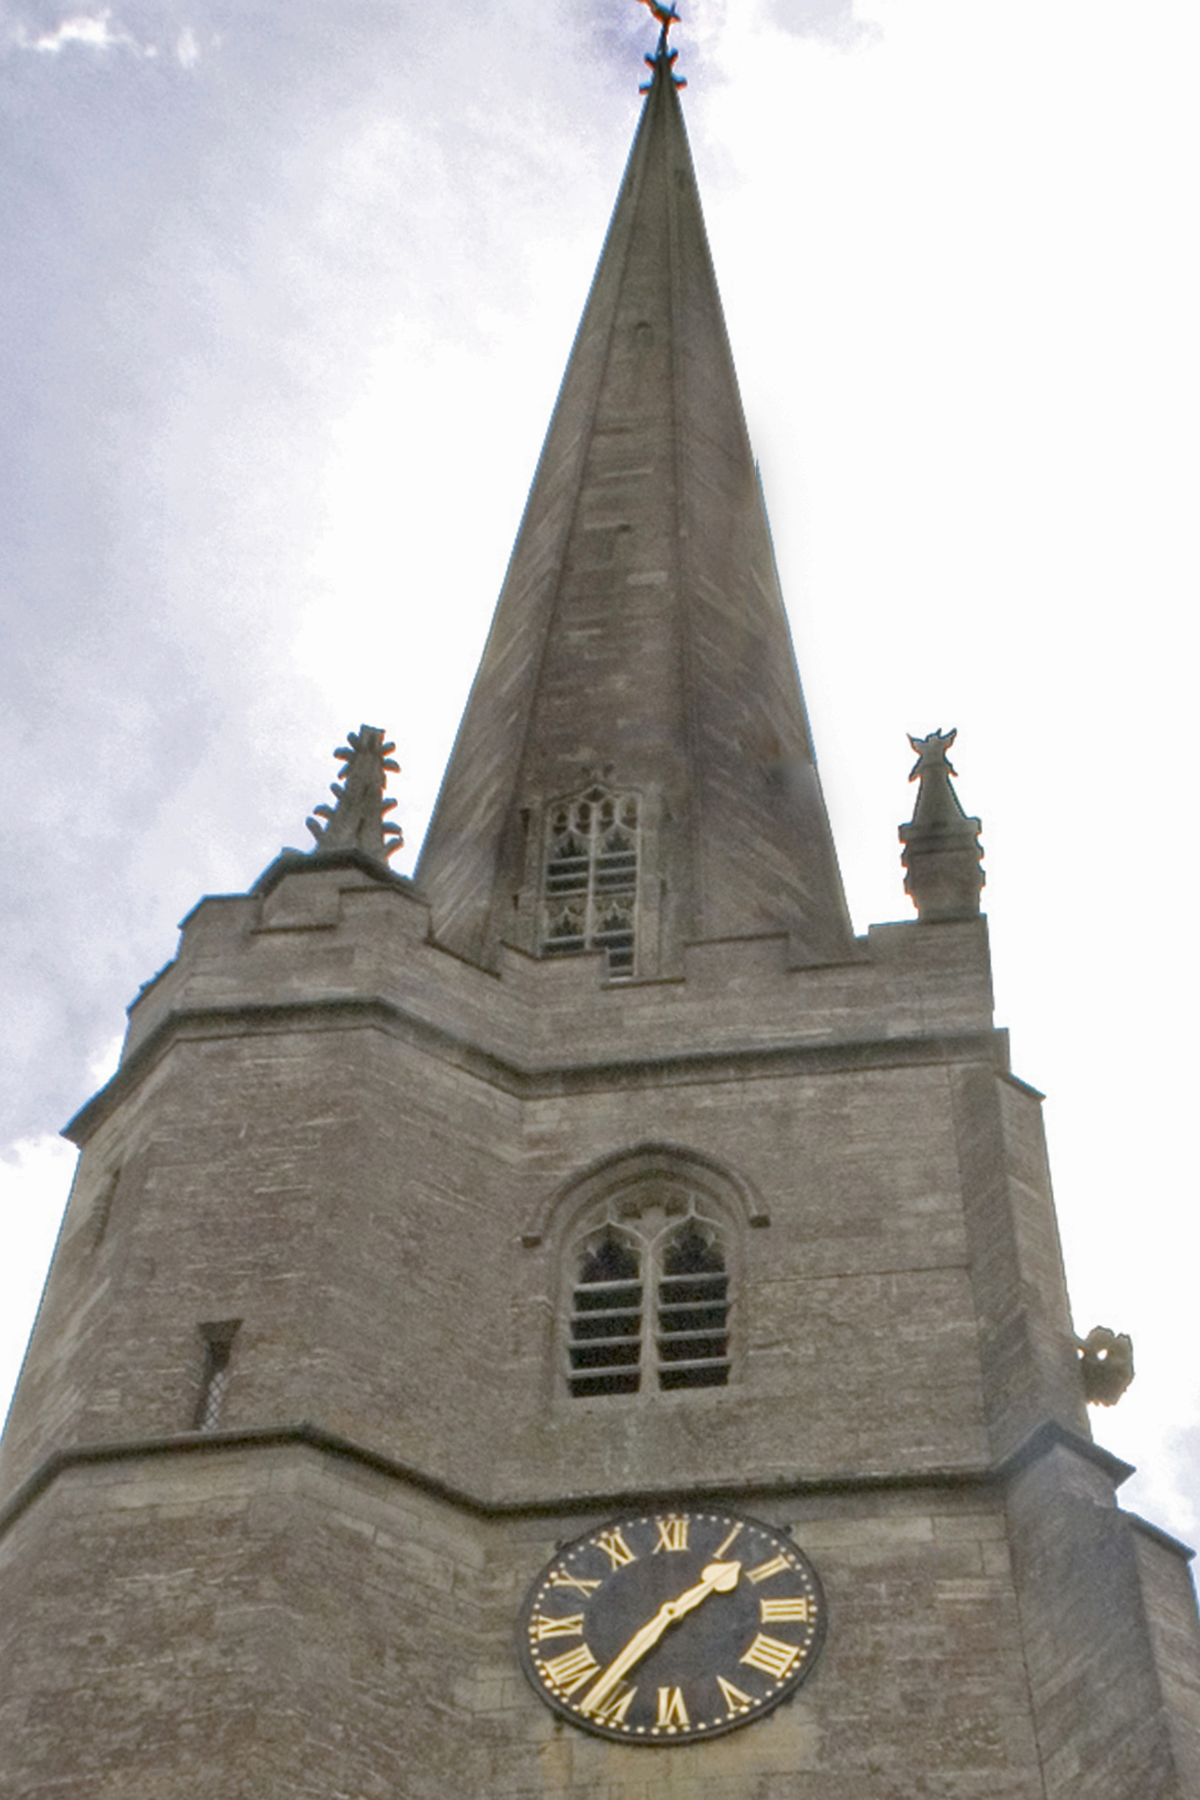 The church clock and tower